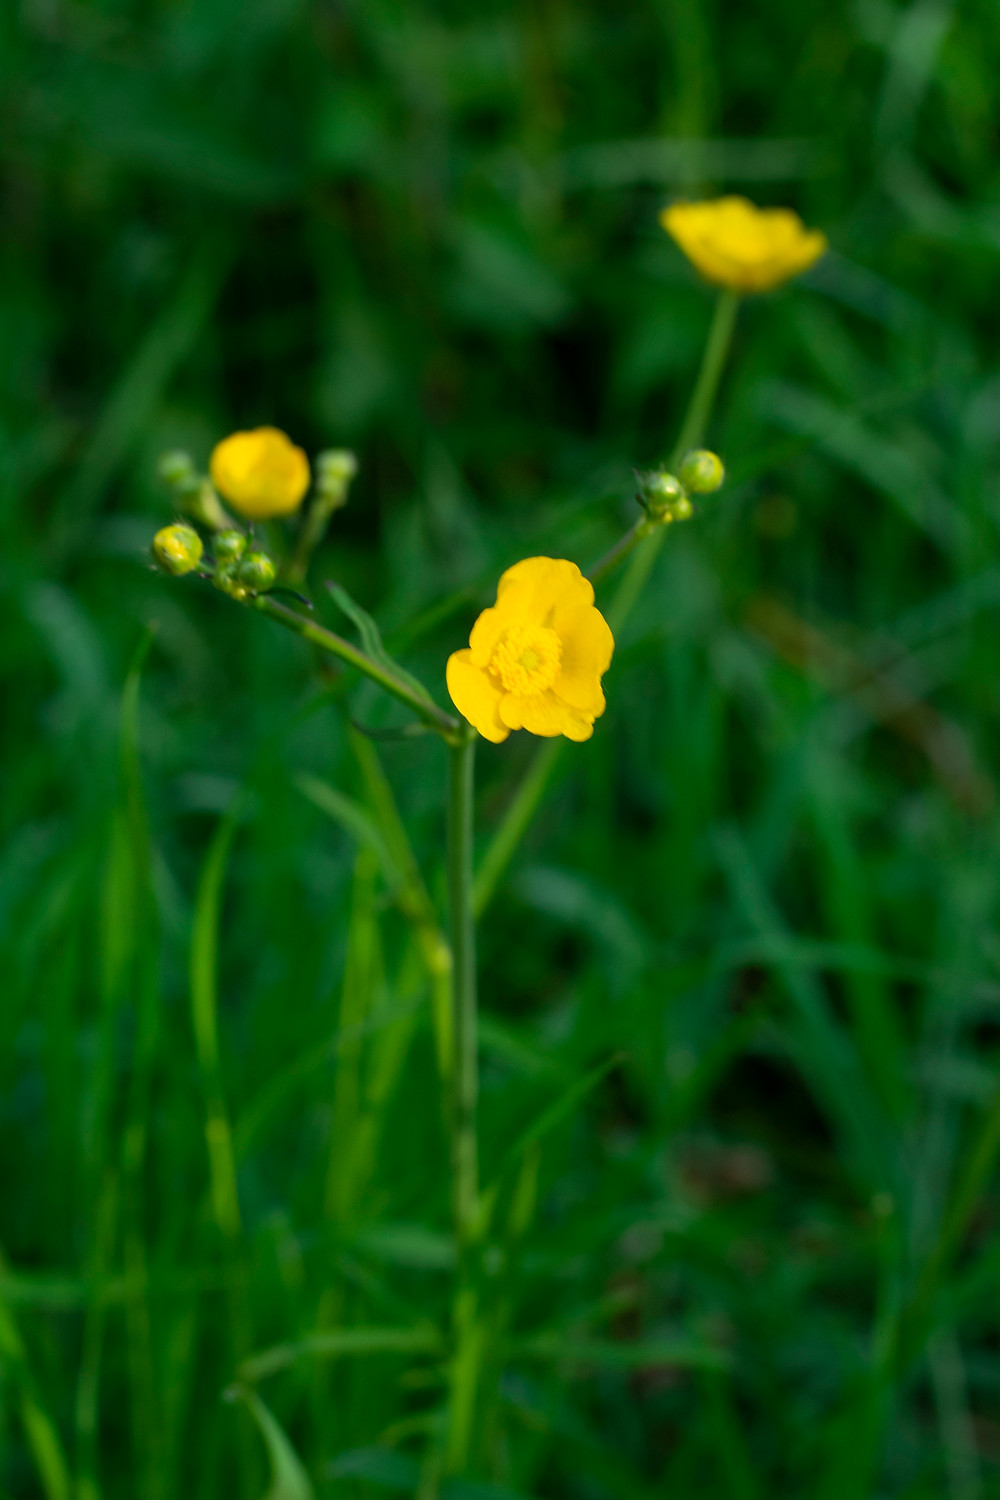 A yellow field buttercup blowing in the wind